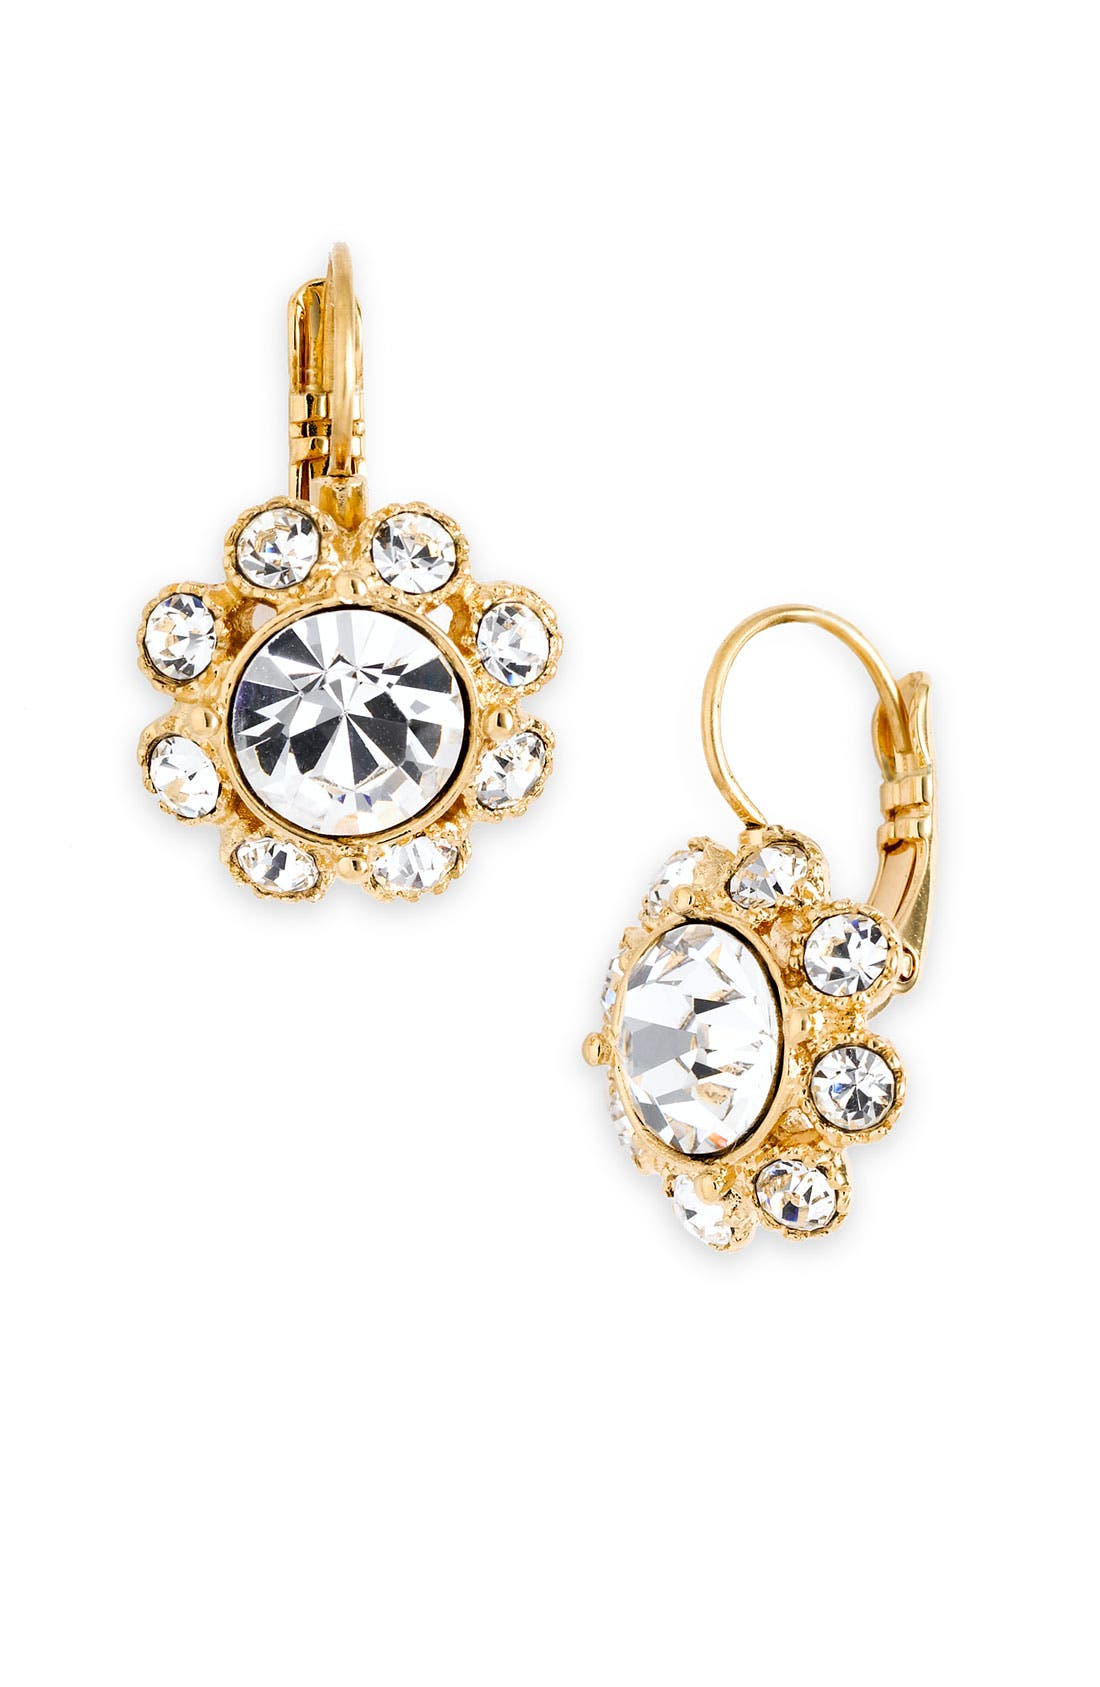 Main Image - kate spade new york 'putting on the ritz' earrings